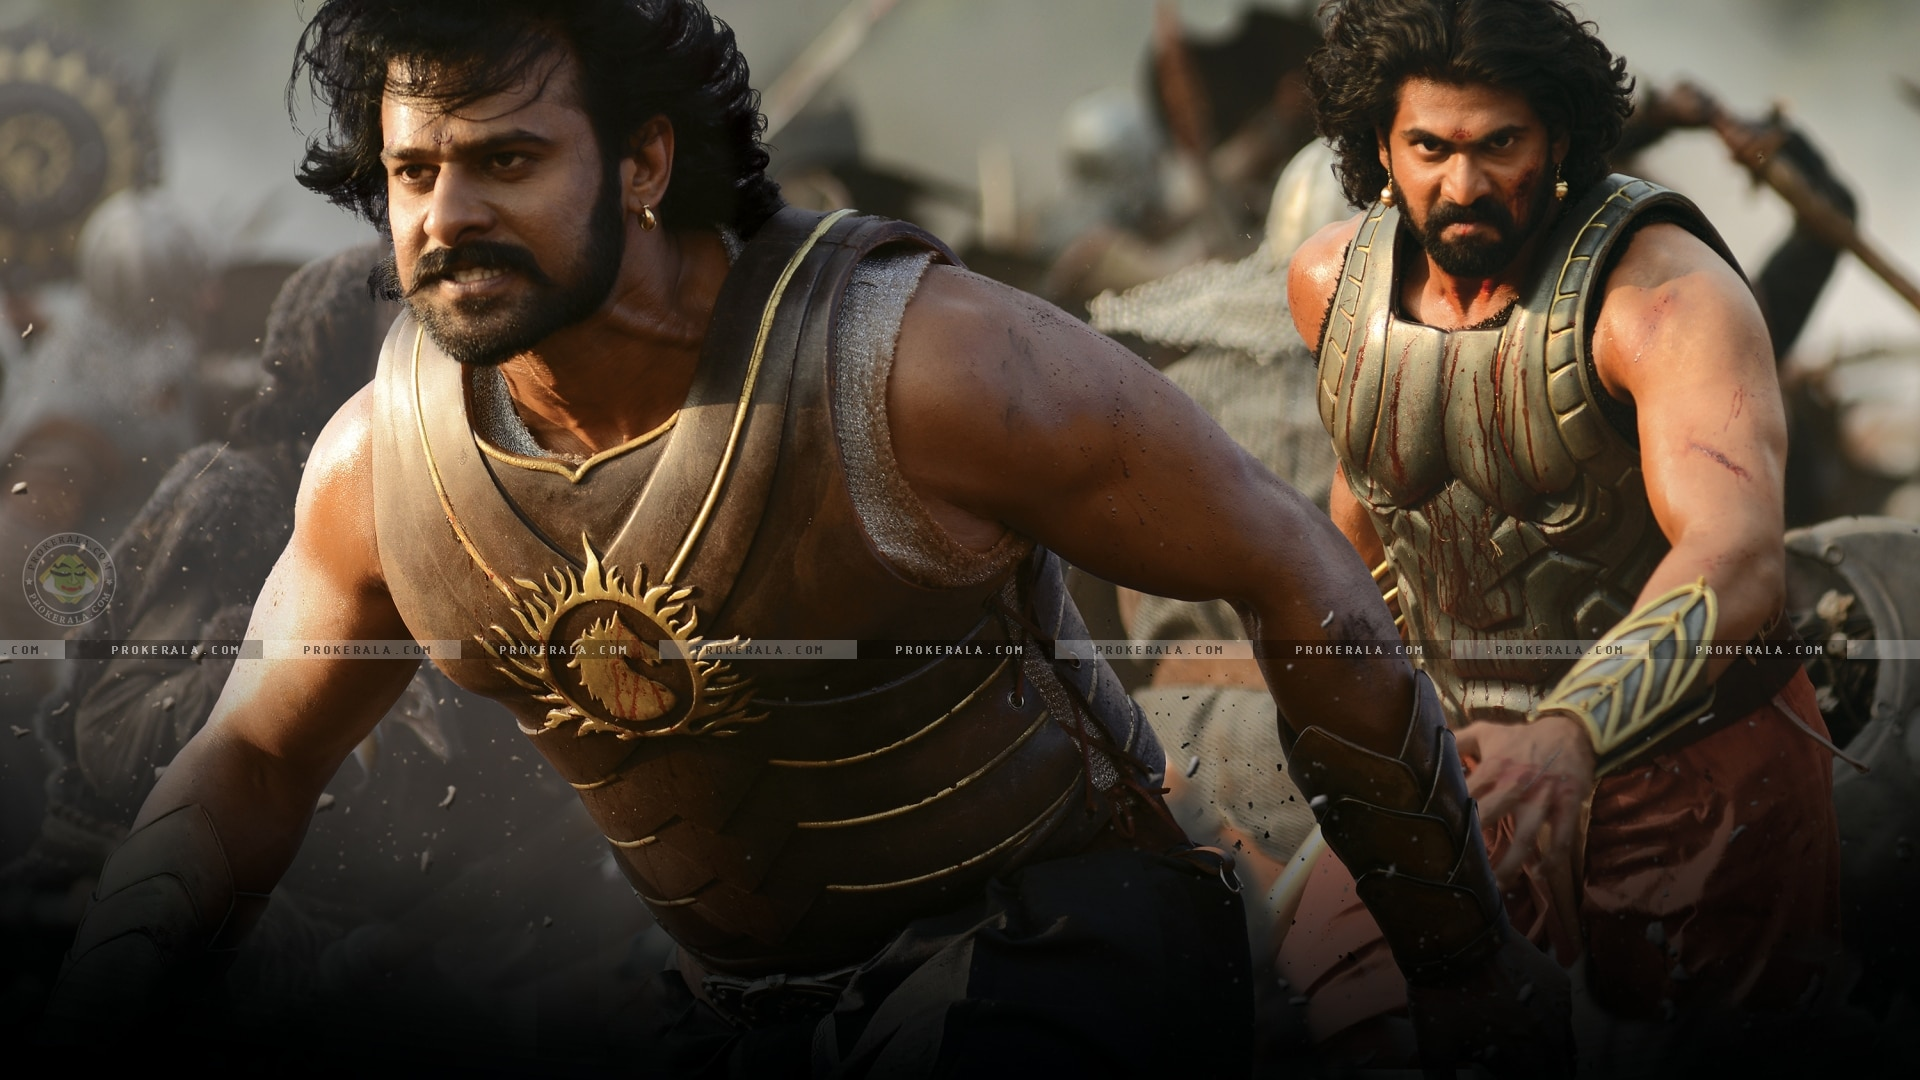 Bahubali - The Begening   Most expensive movie till date in Indian Cinema .... Action packed Drama by S Rajamouli